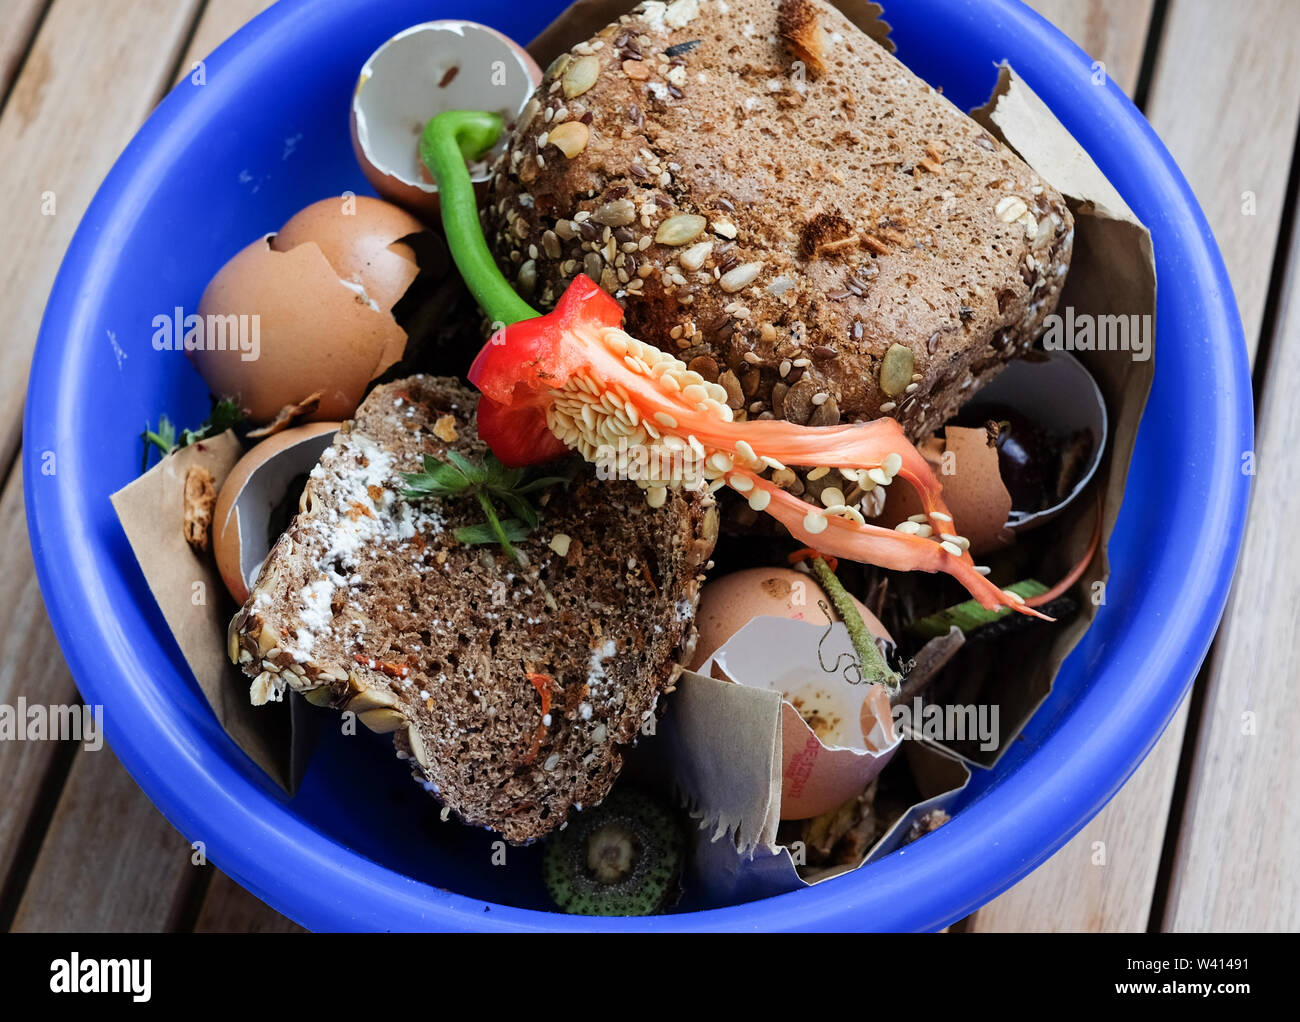 Berlin, Germany. 17th July, 2019. Biowaste is collected in a household in a bowl. Credit: Jens Kalaene/dpa-Zentralbild/ZB/dpa/Alamy Live News Stock Photo